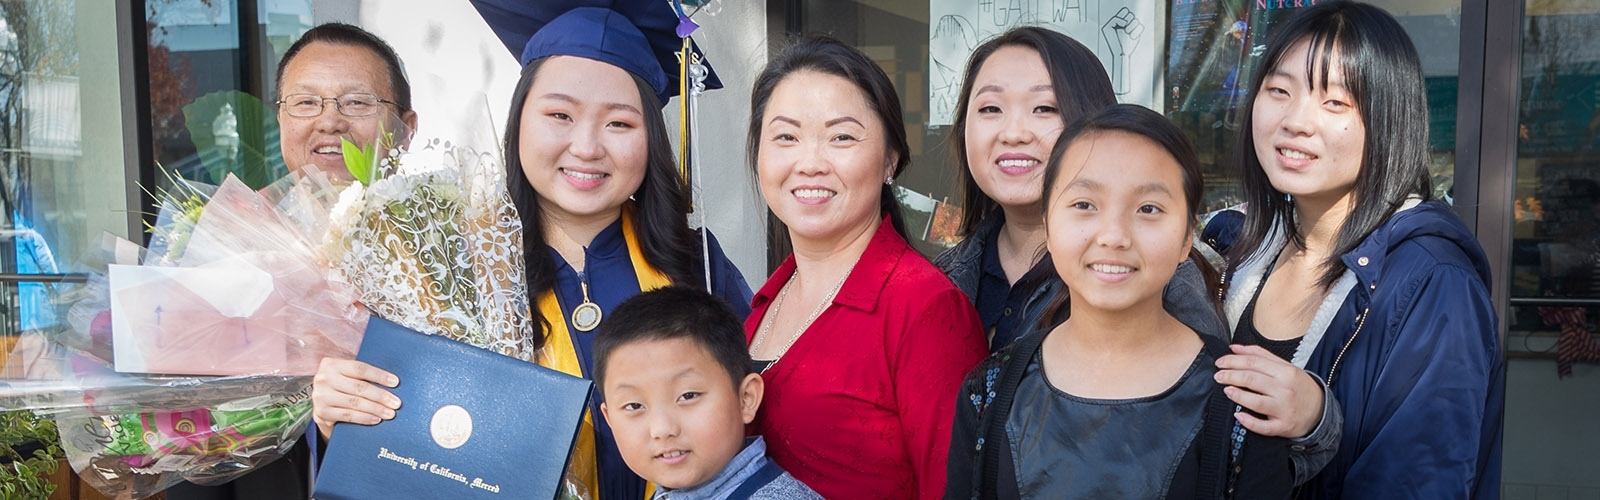 A graduate in cap and gown smiles for the camera with her parents and siblings of all ages.